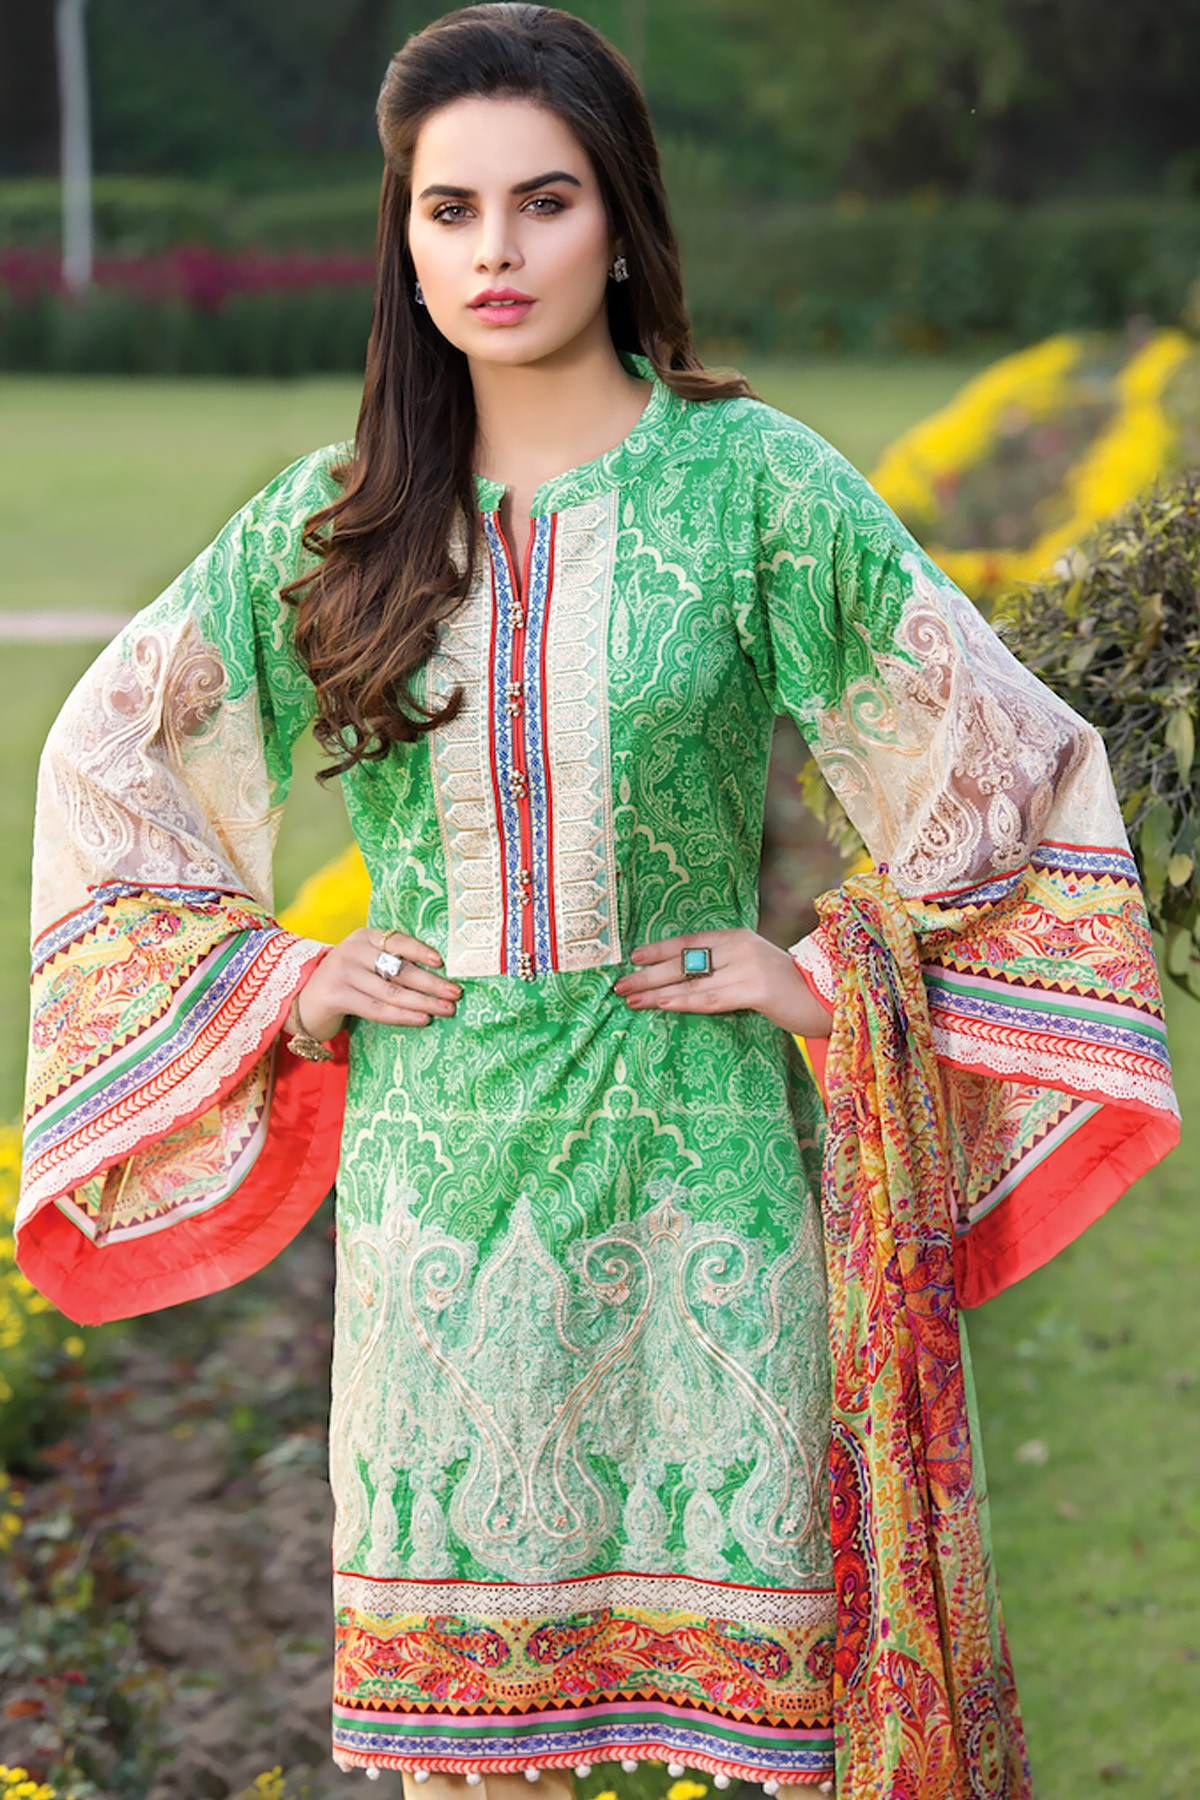 Zeniya Green Lawn Attire